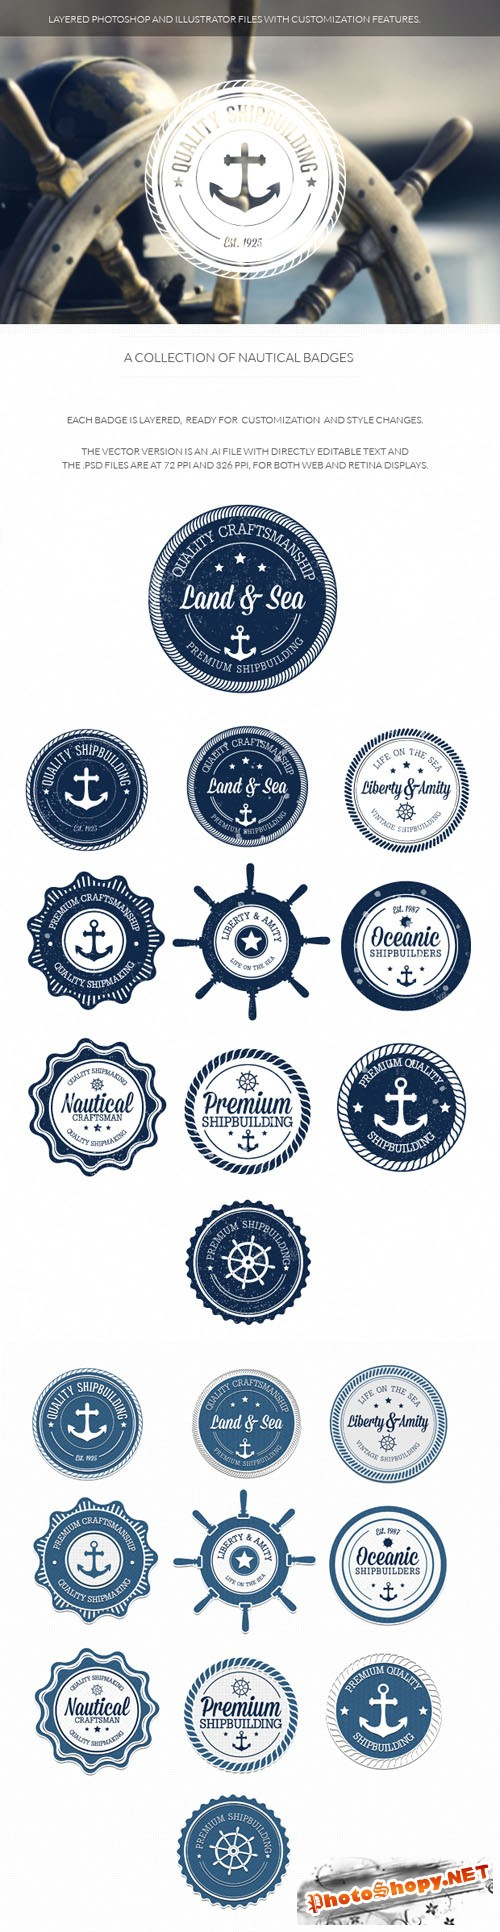 Nautical Badges Vector Elements Set